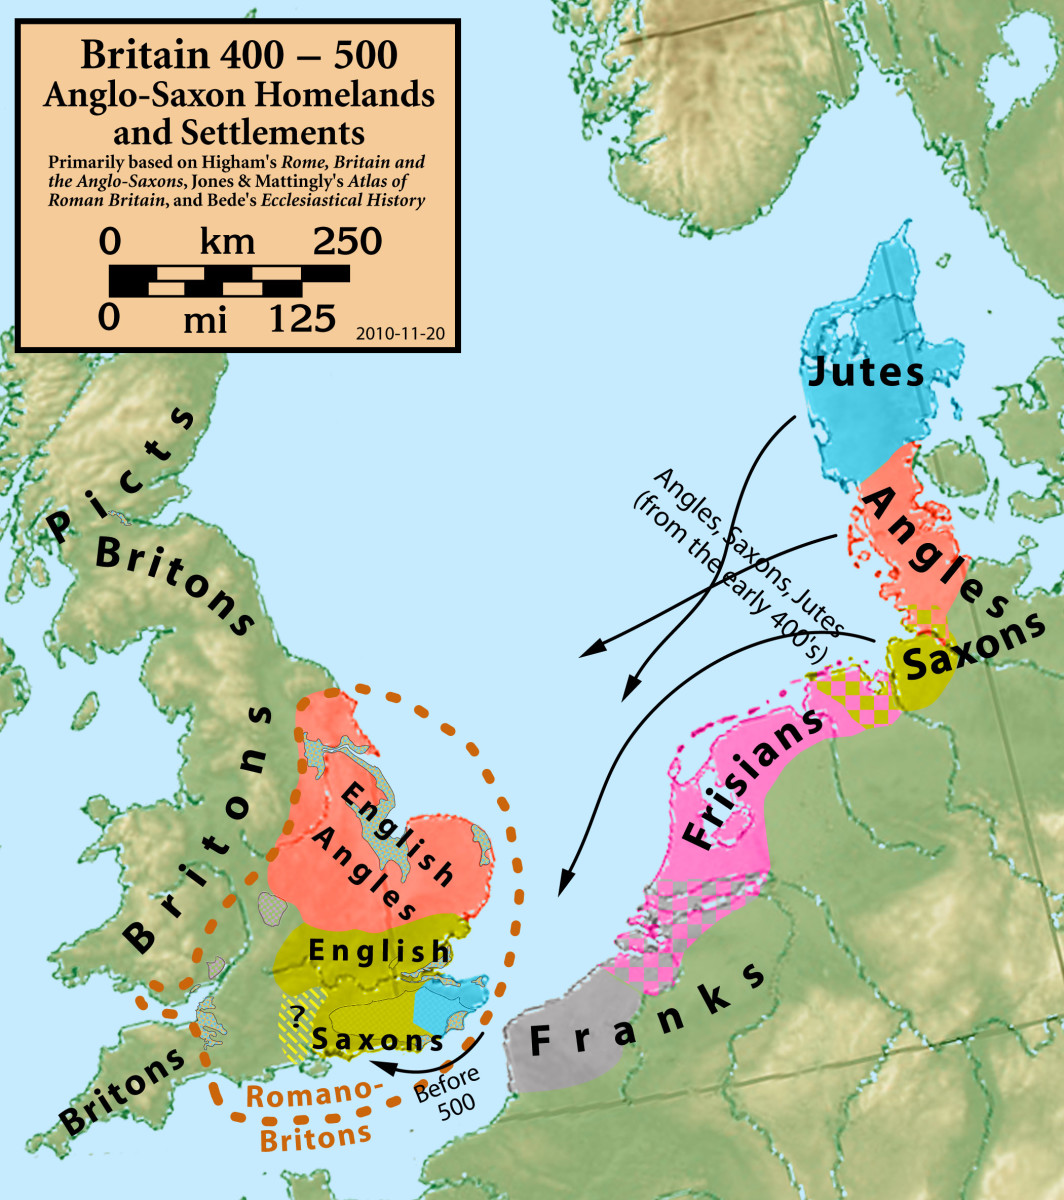 Migration from North-western Europe began soon after the Romans left in AD 425